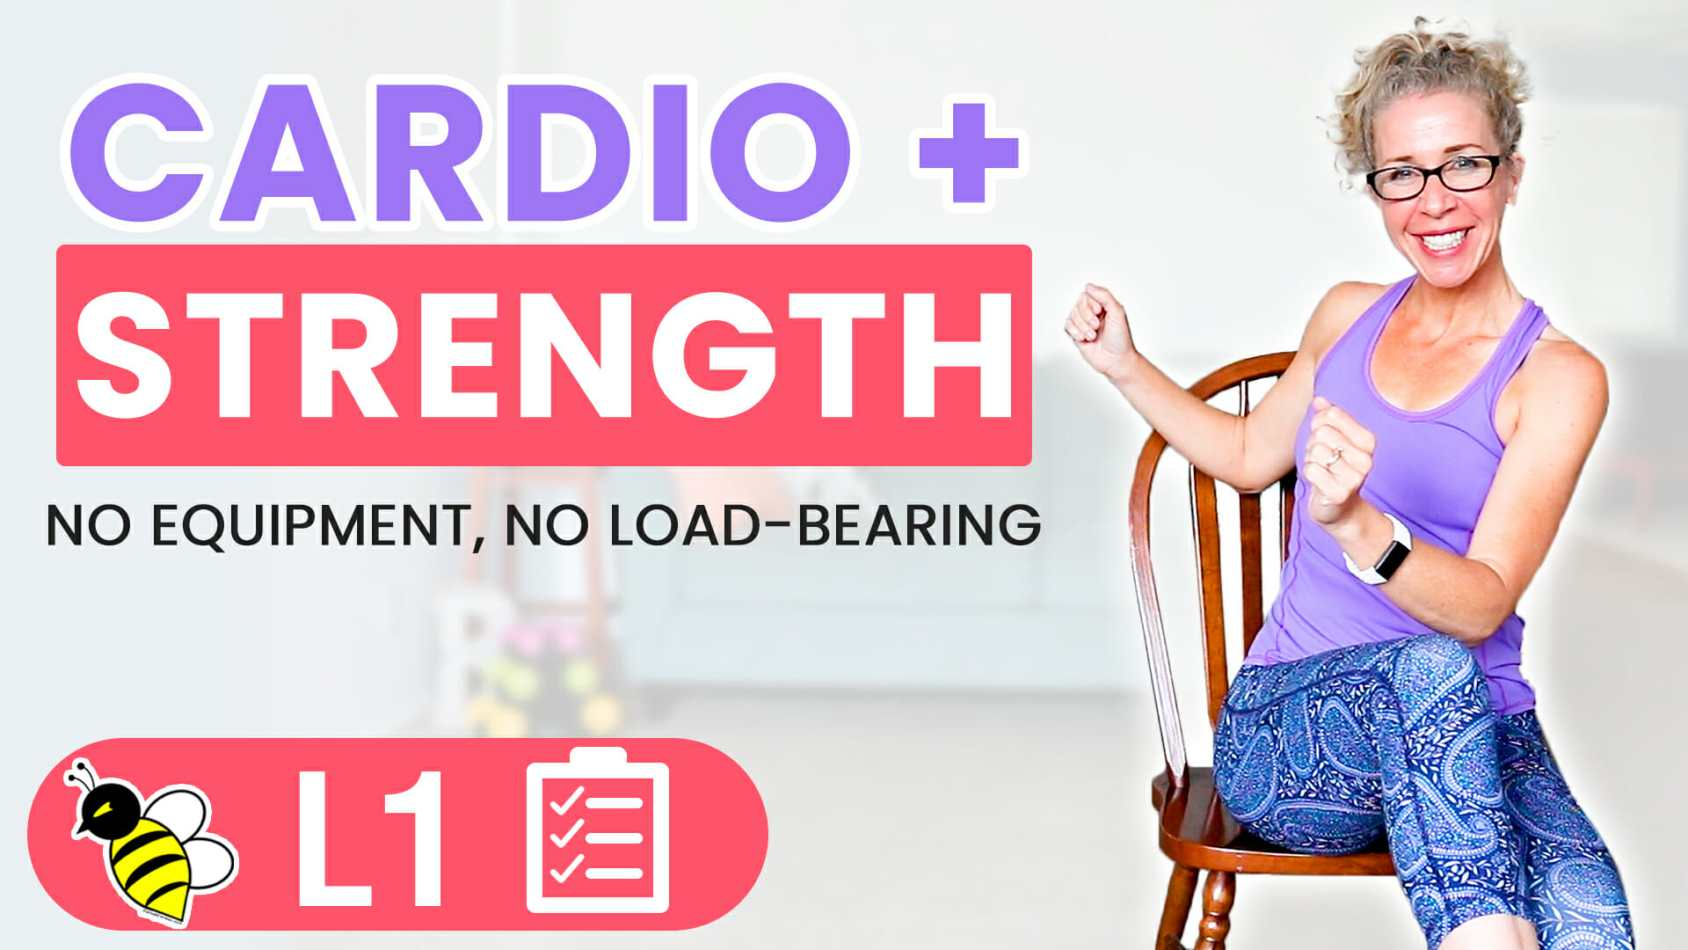 35 Minute SEATED Bodyweight Cardio + Strength BURN 250 Calories